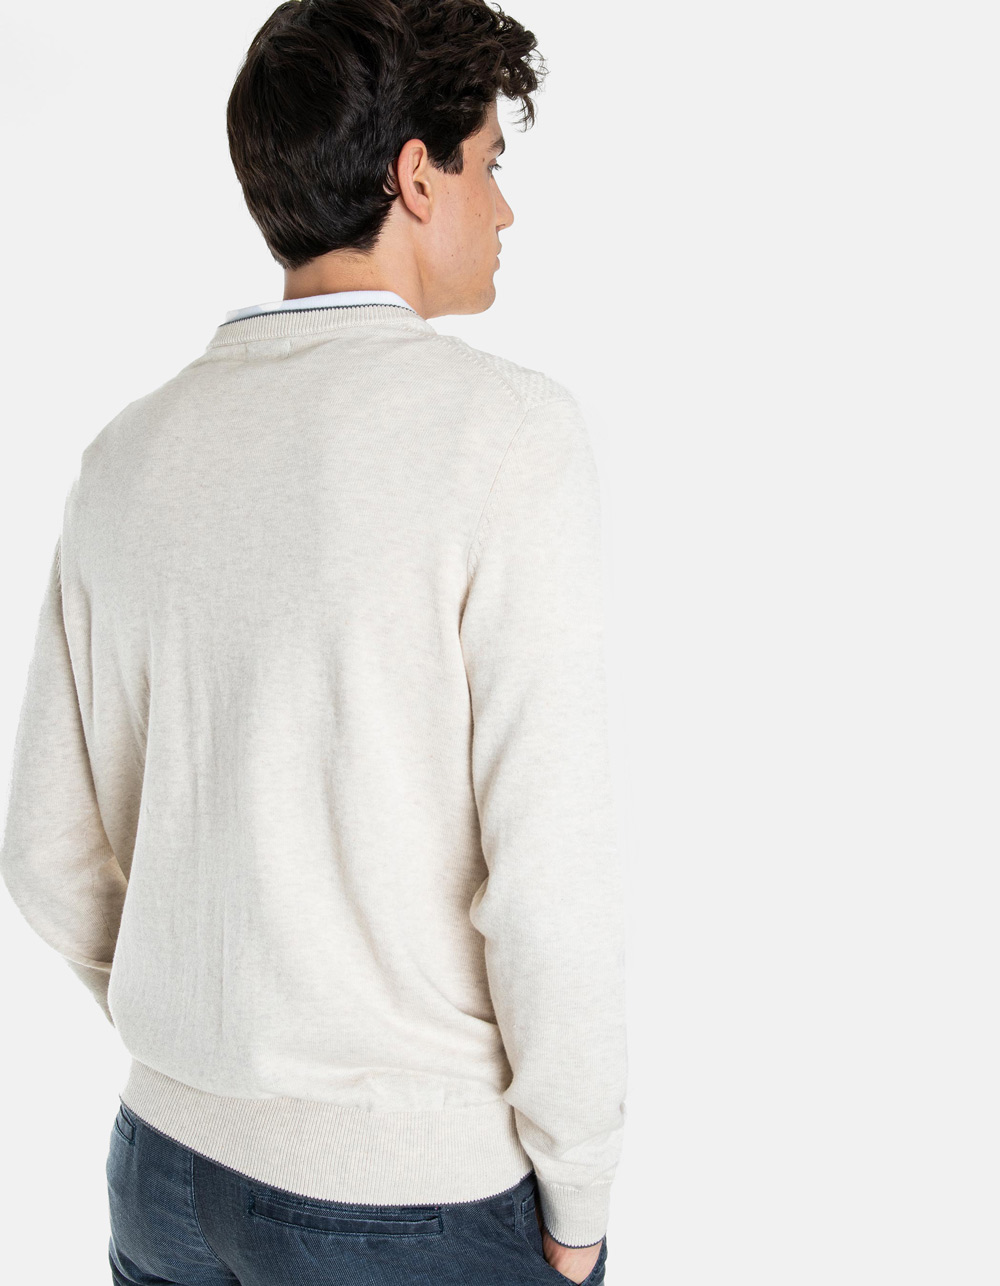 Beige round collar sweater structure - Backside